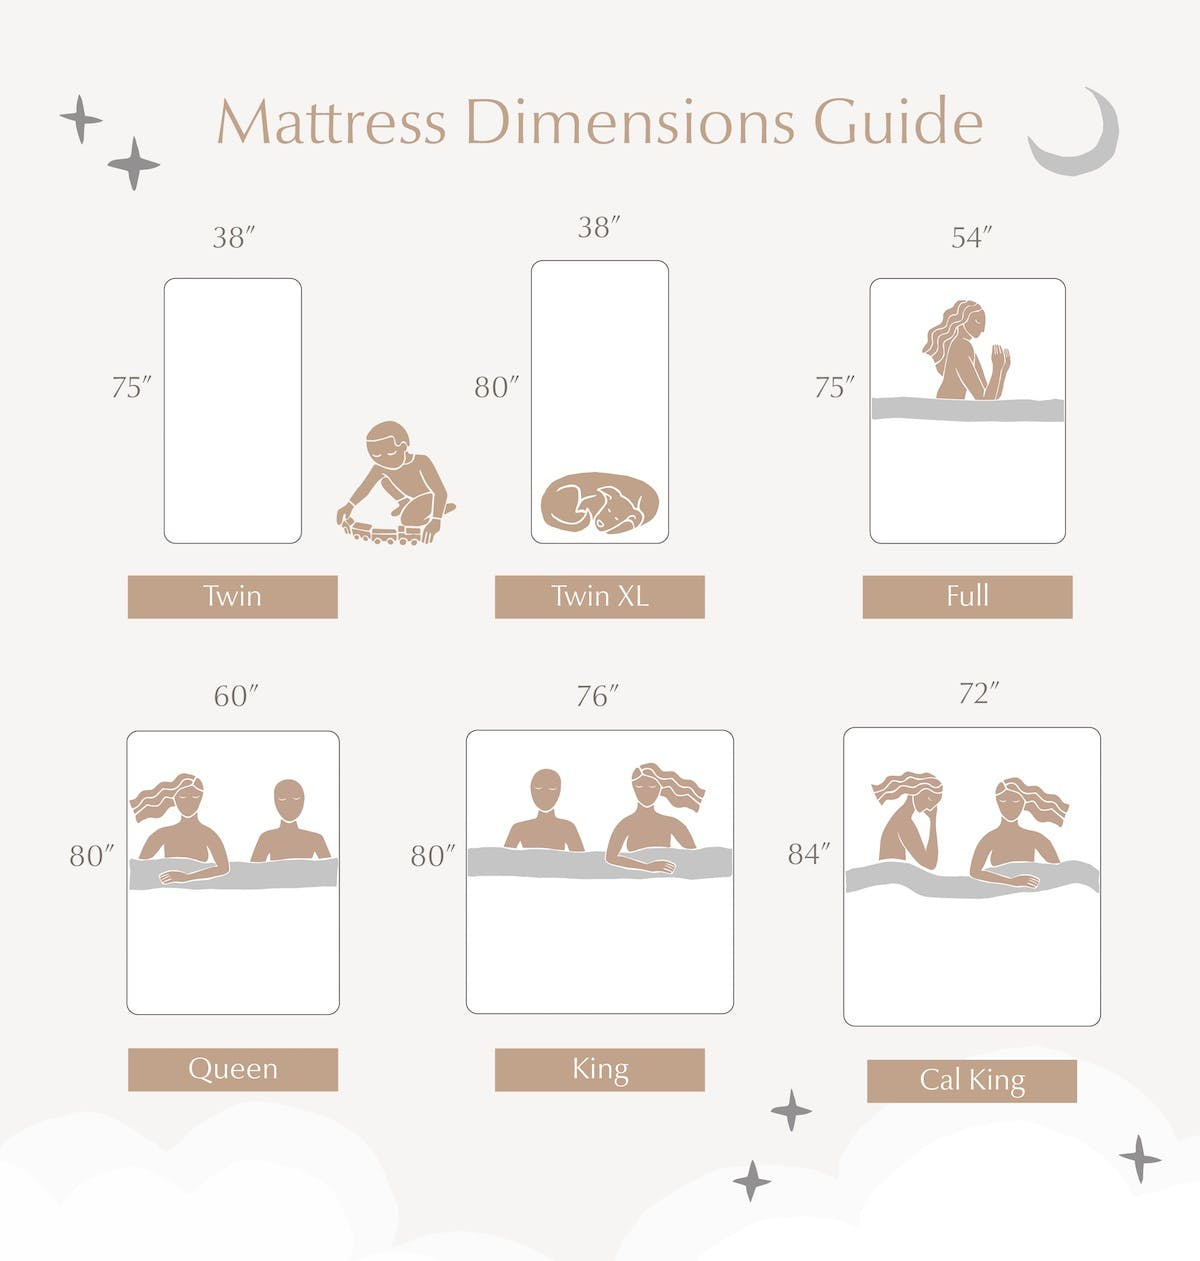 mattress sizes and dimensions infographic